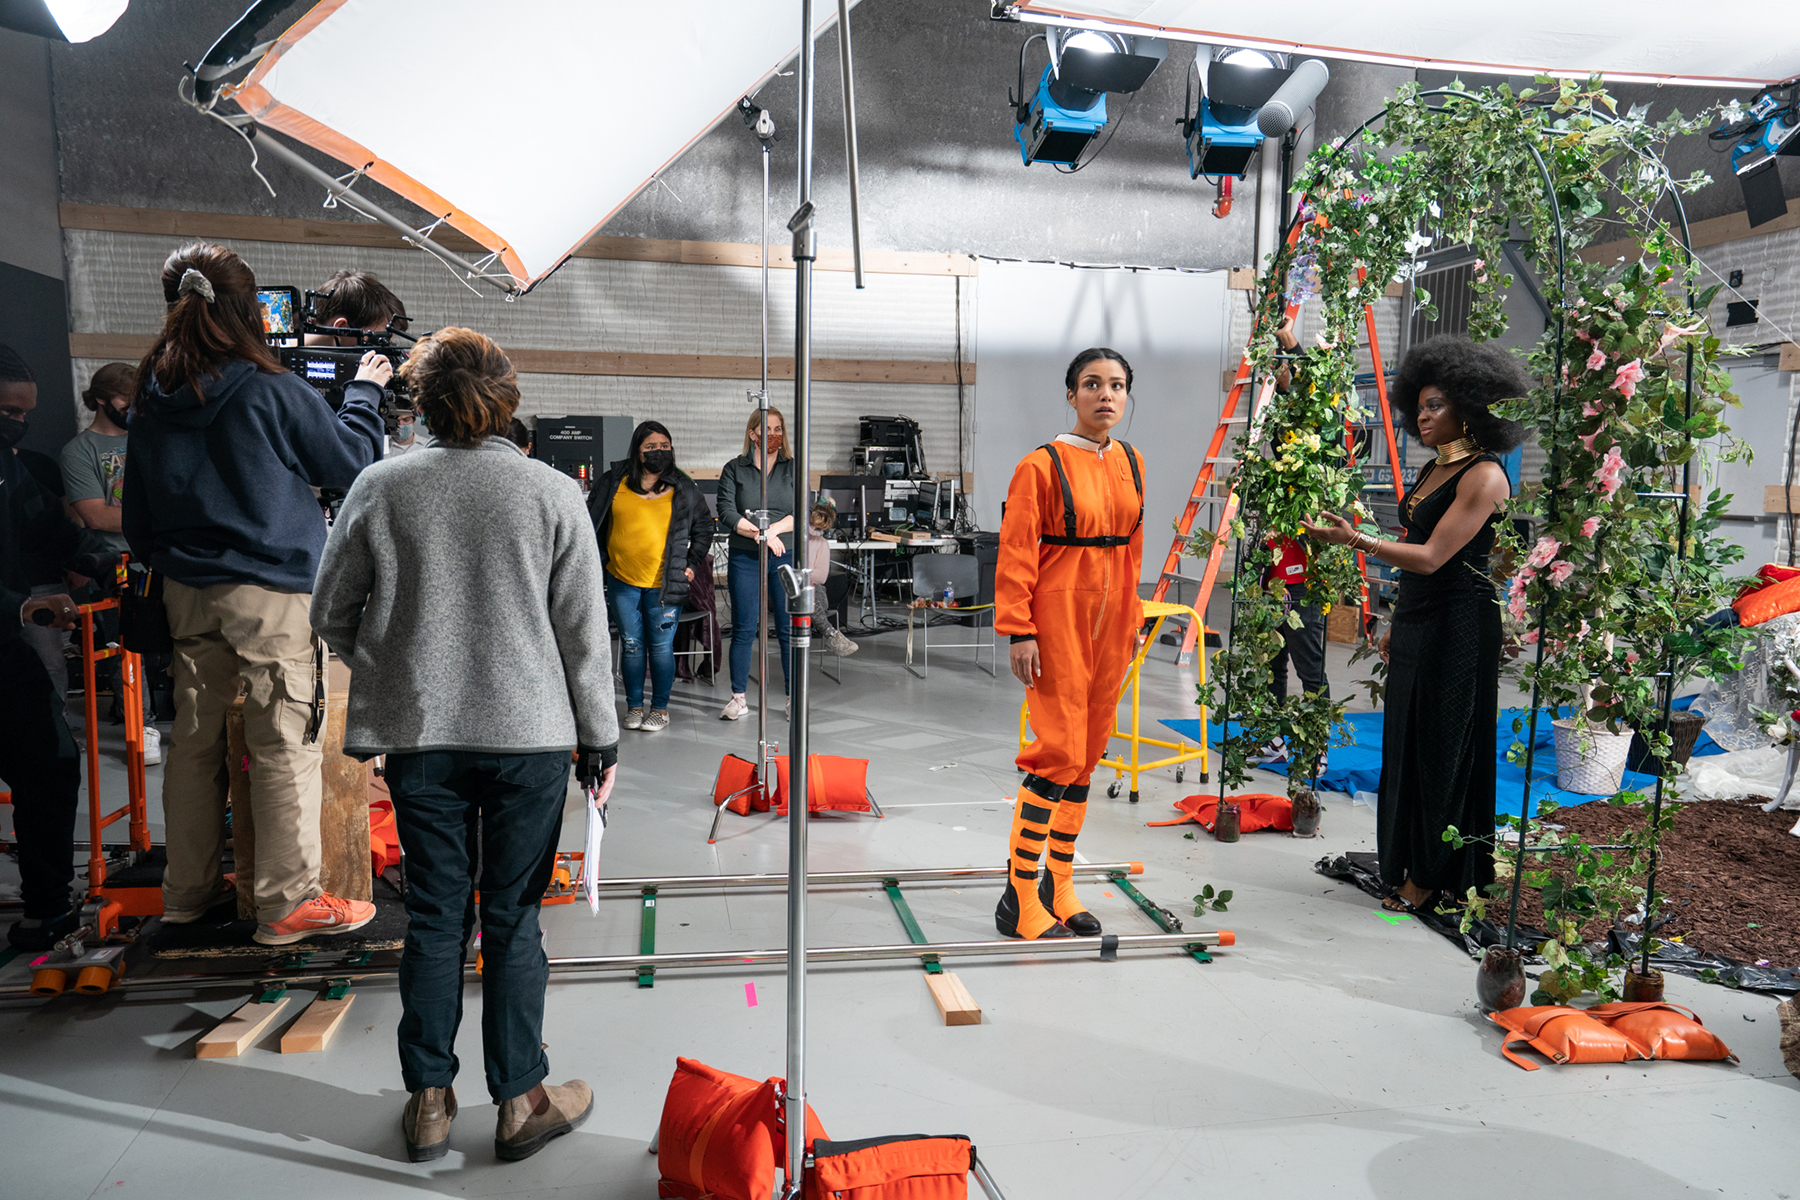 A film crew focuses on an actor in a space suit.